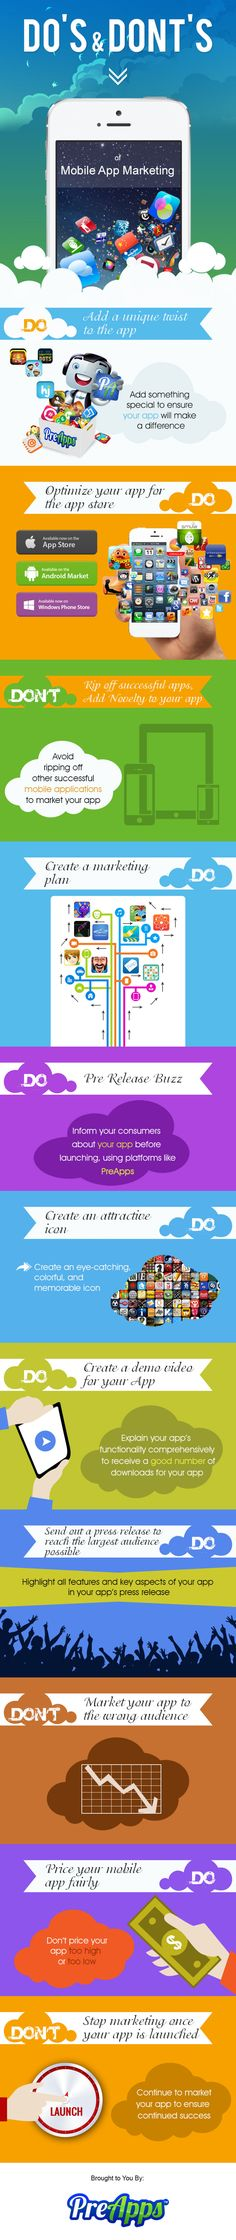 Do's and Don'ts of #Mobile #App #Marketing